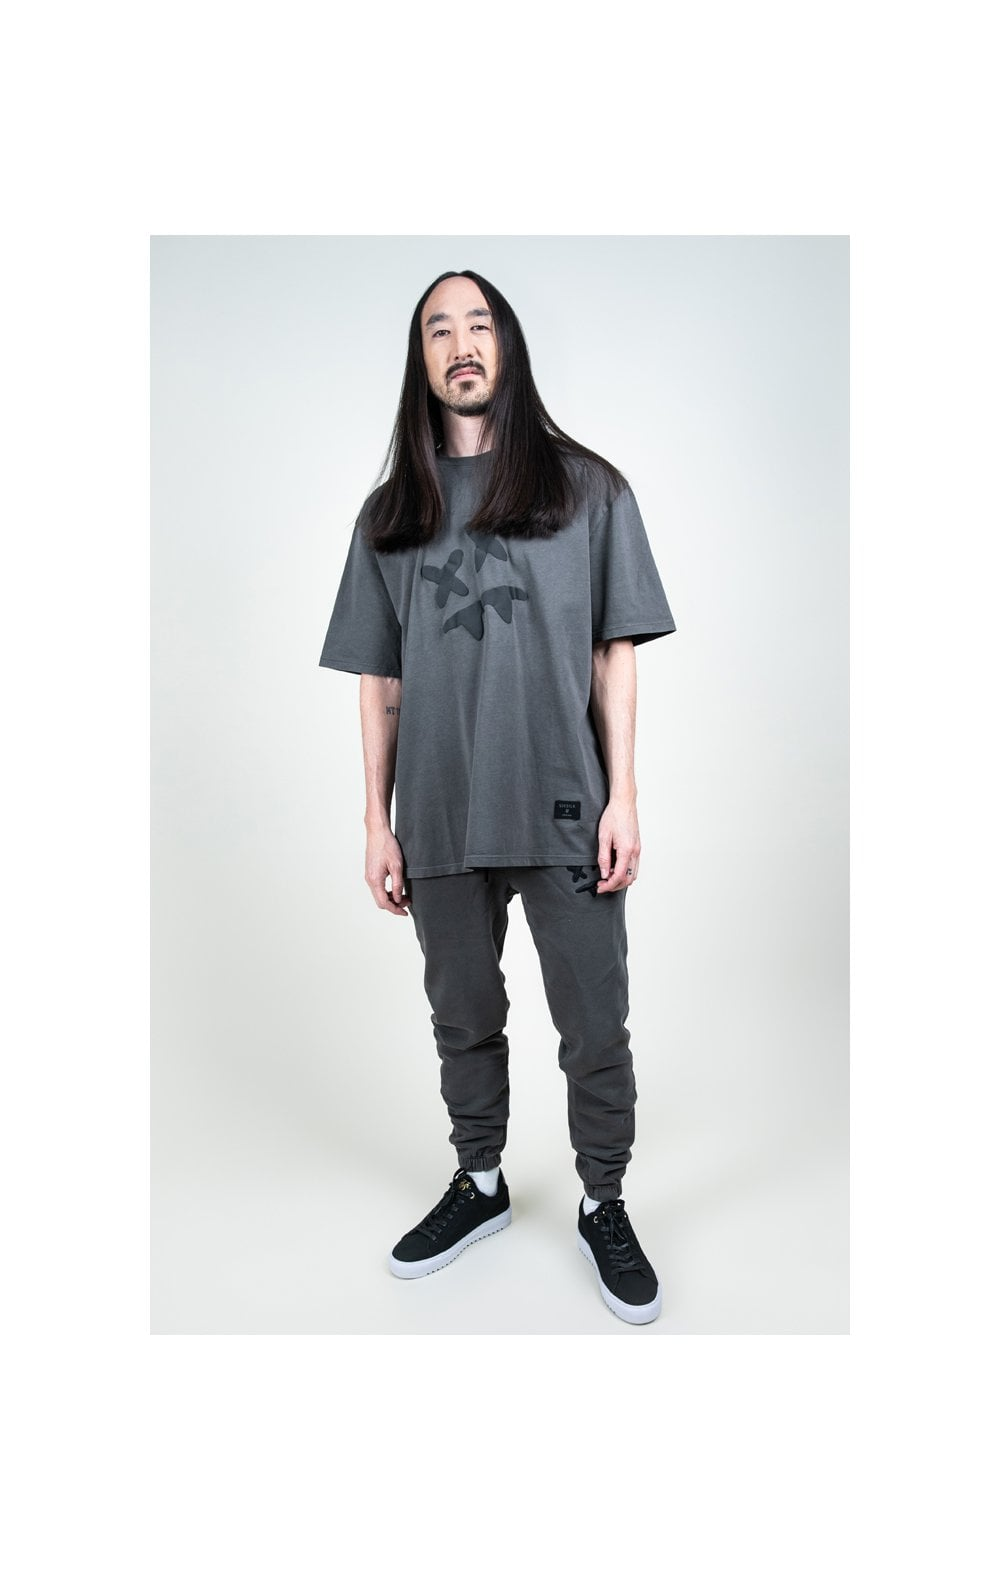 SikSilk X Steve Aoki S/S Oversize Essential Tee – Washed Grey (4)